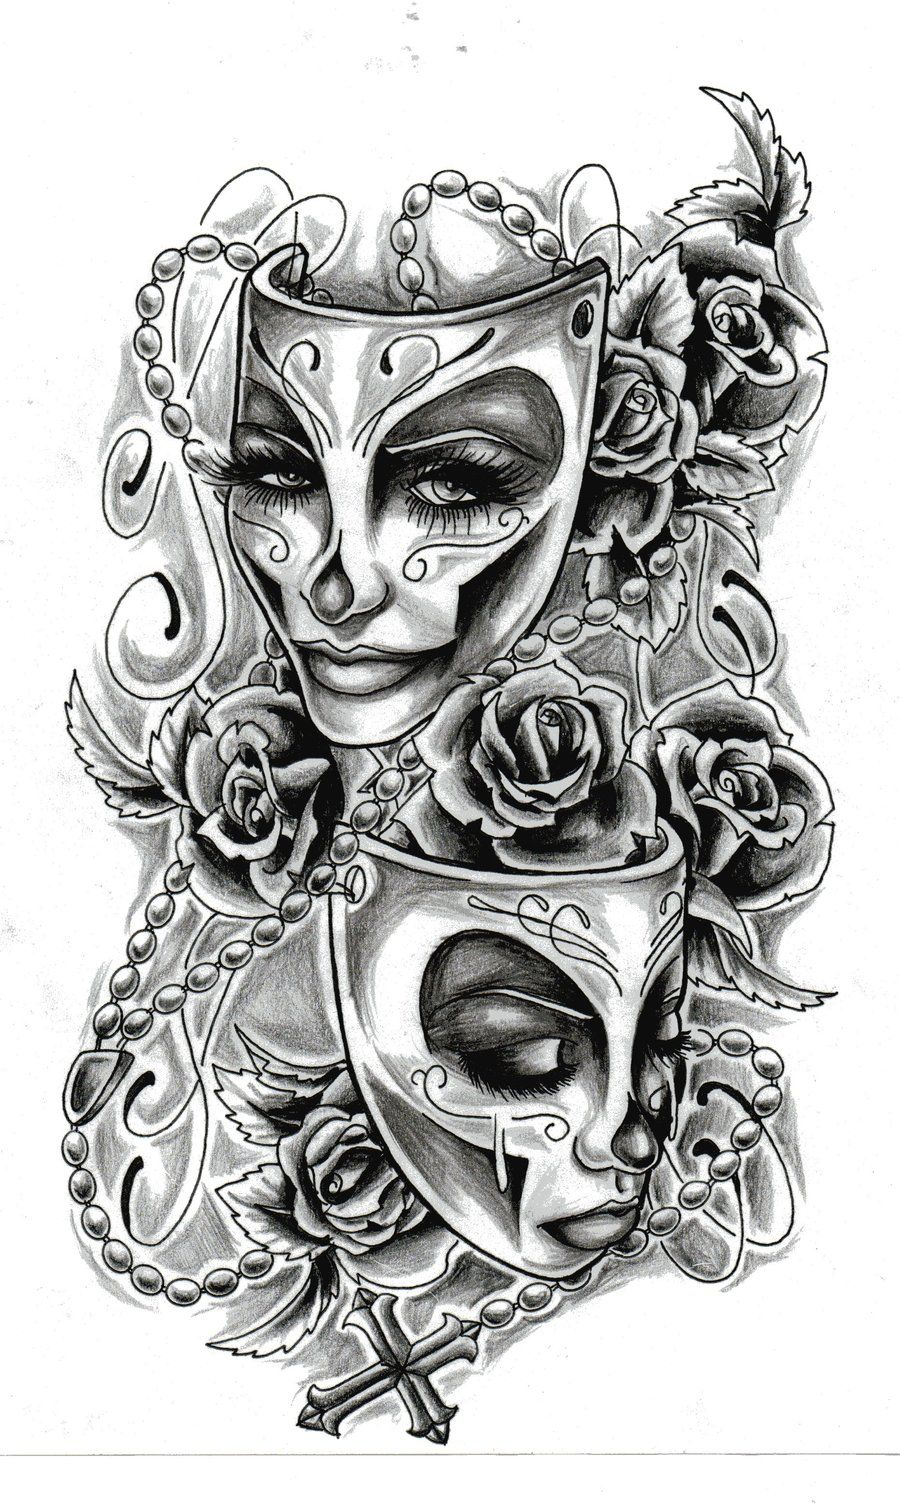 Tattoo design picture - Tattoo Sketches Feminine Tattoo Design By Almigh T Designs Interfaces Tattoo Design